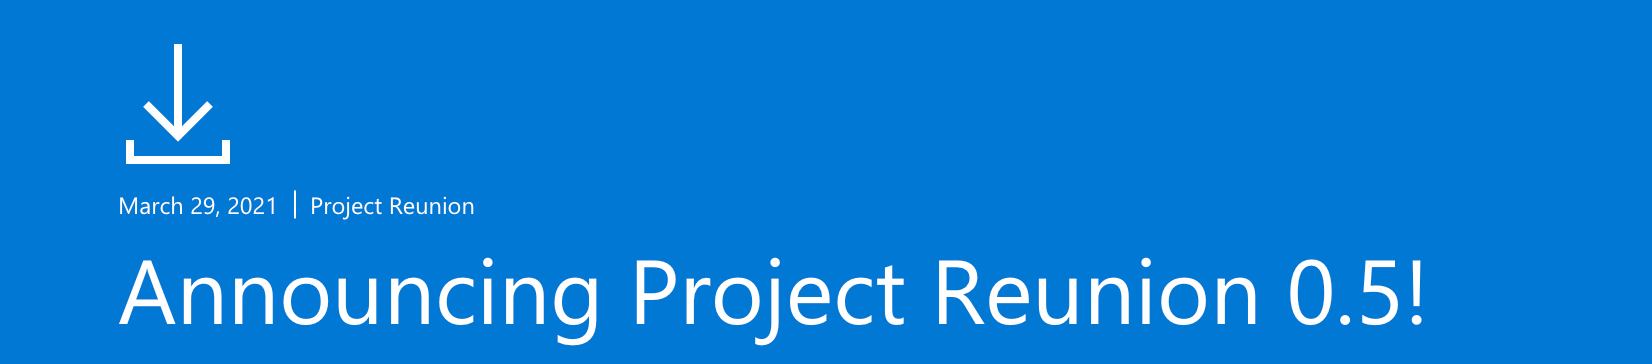 A header bar style graphic dated March 29, 2021 says, 'Announcing Project Reunion 0.5!'